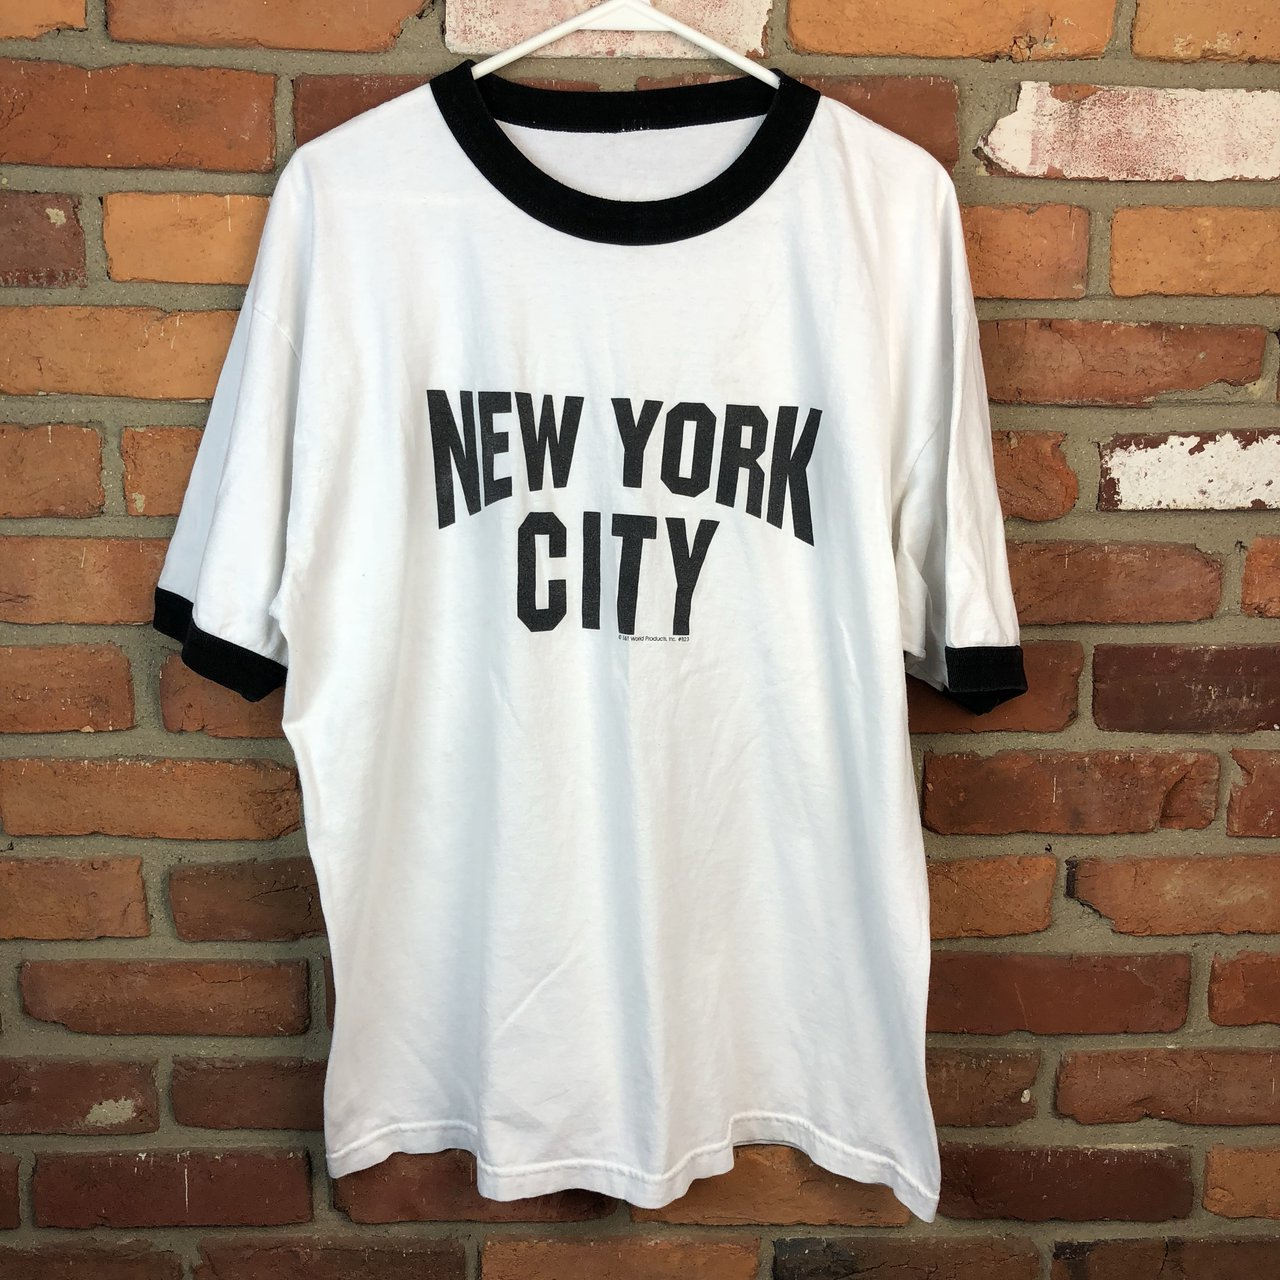 Vintage JOHN LENNON NEW YORK CITY ringer t shirt! Good and - Depop ba892096d6d